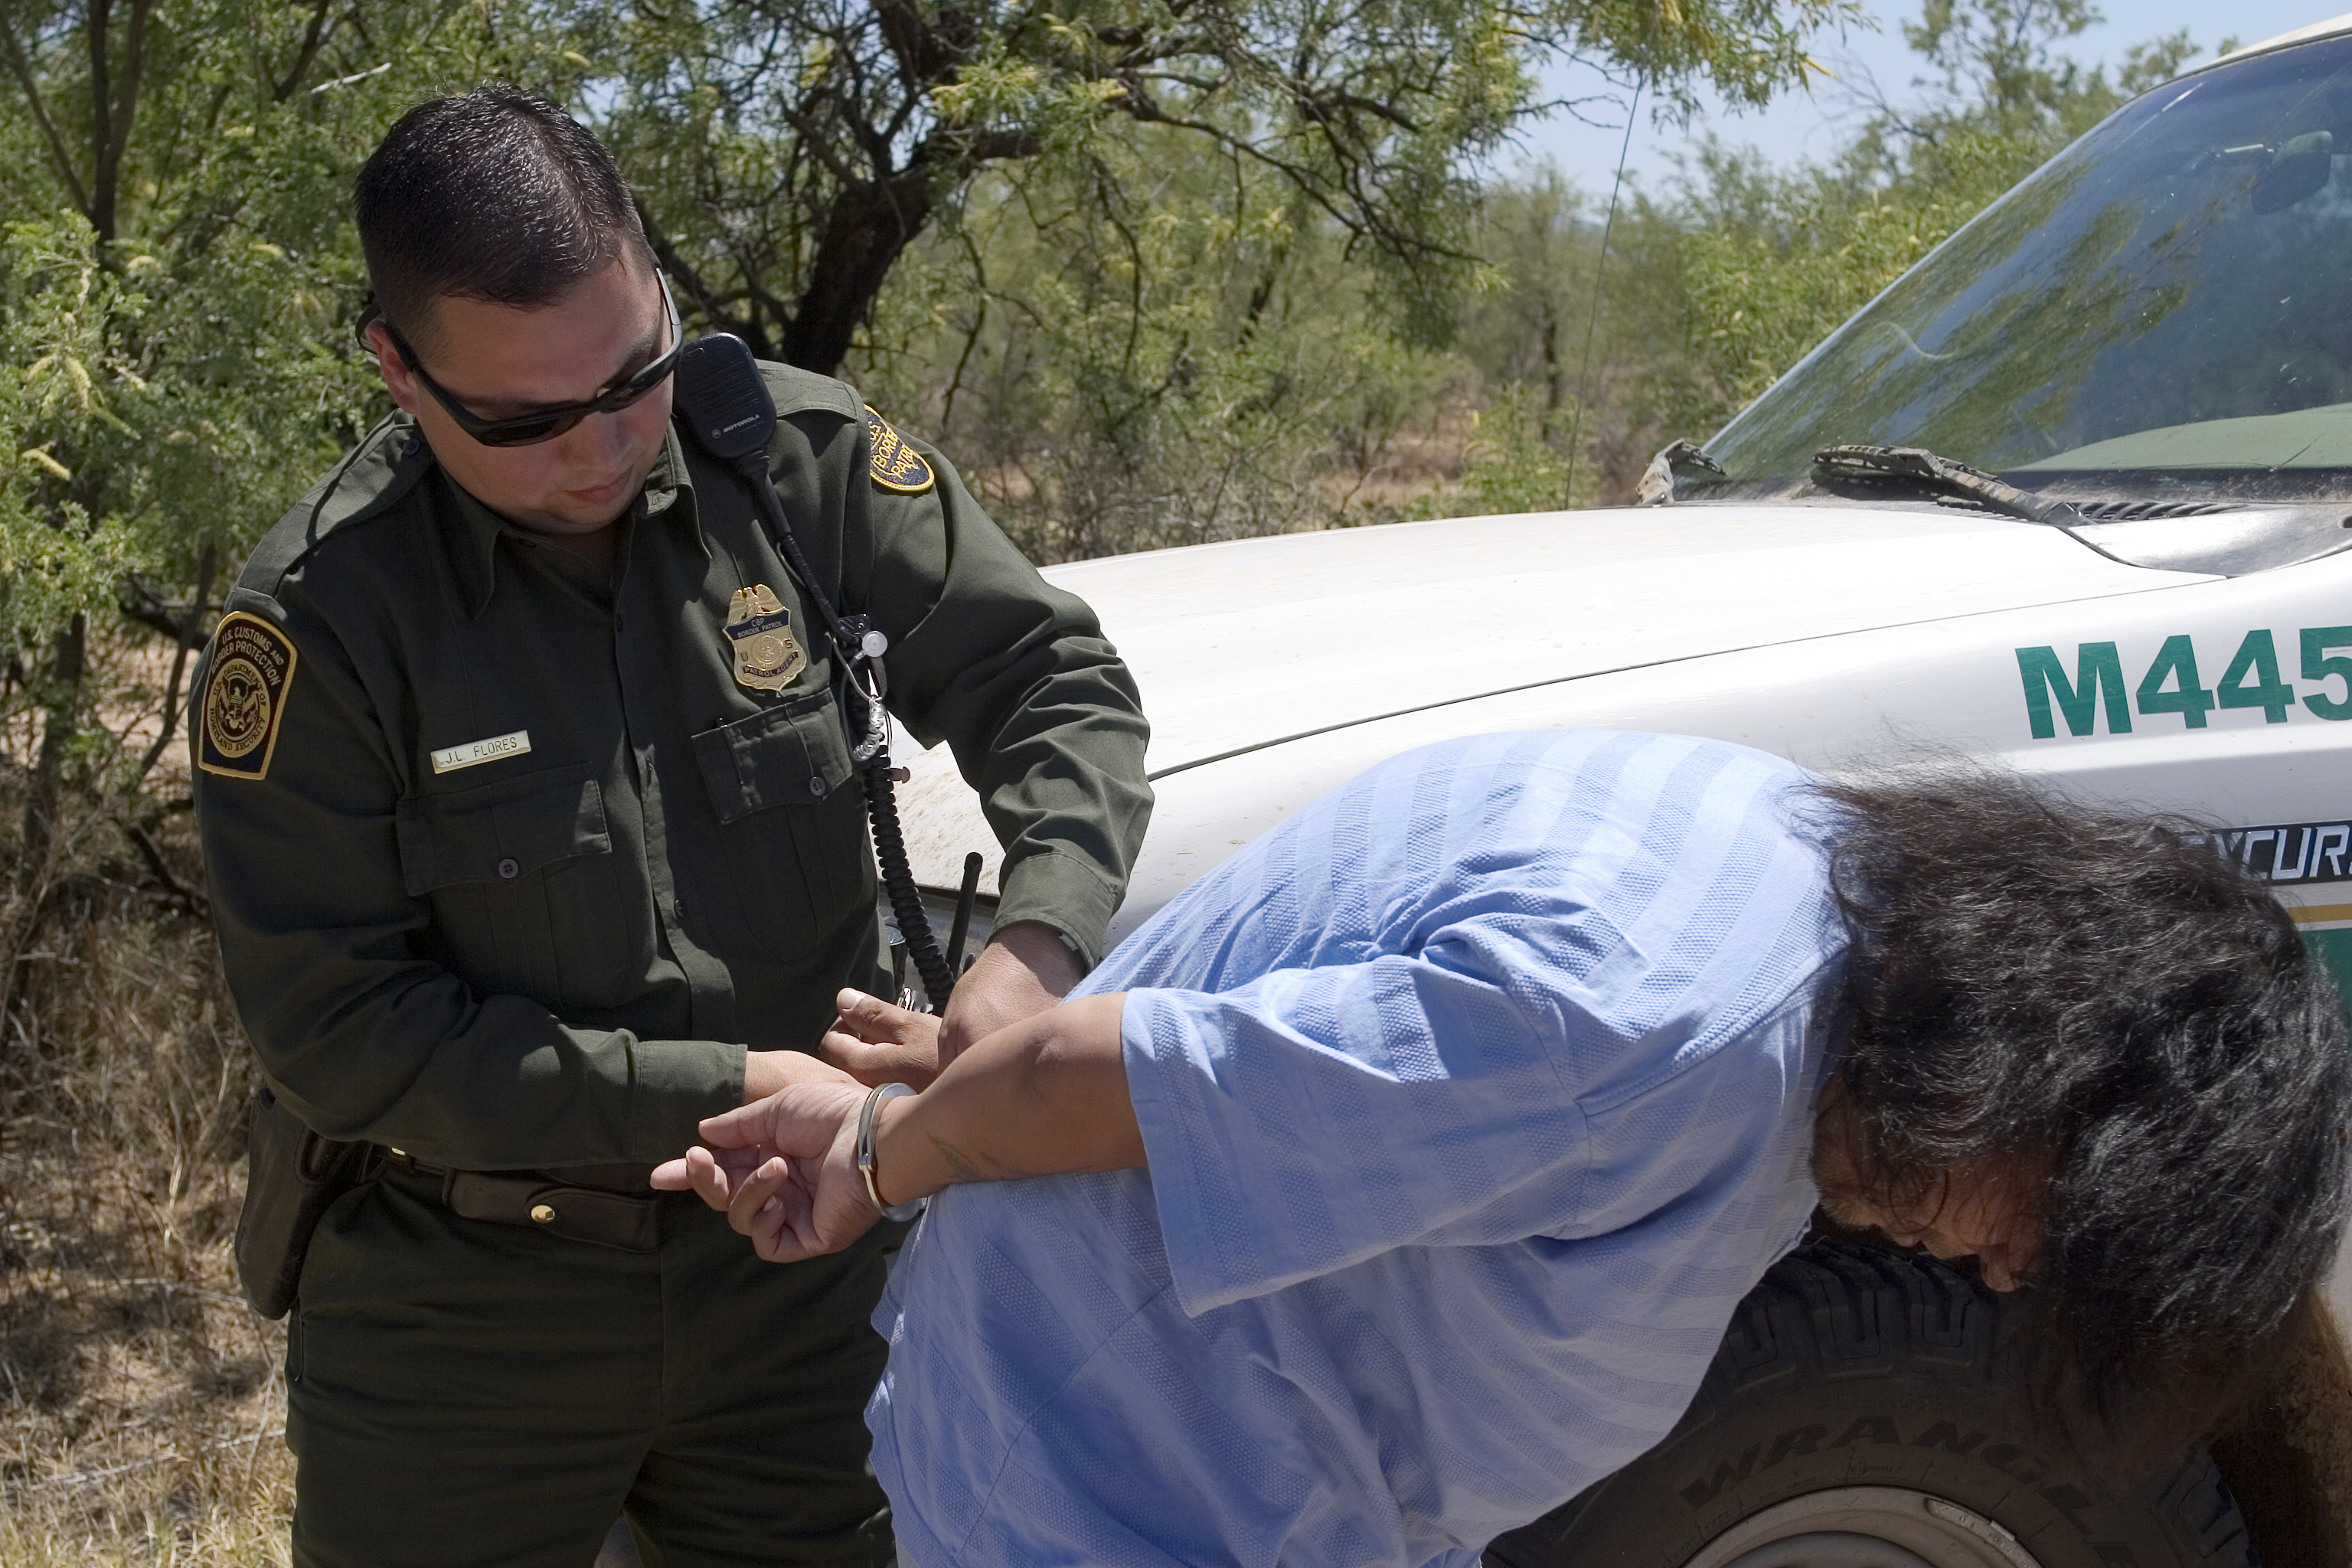 Border Patrol agent places a Mexican National under arrest for transporting drugs into the U.S.